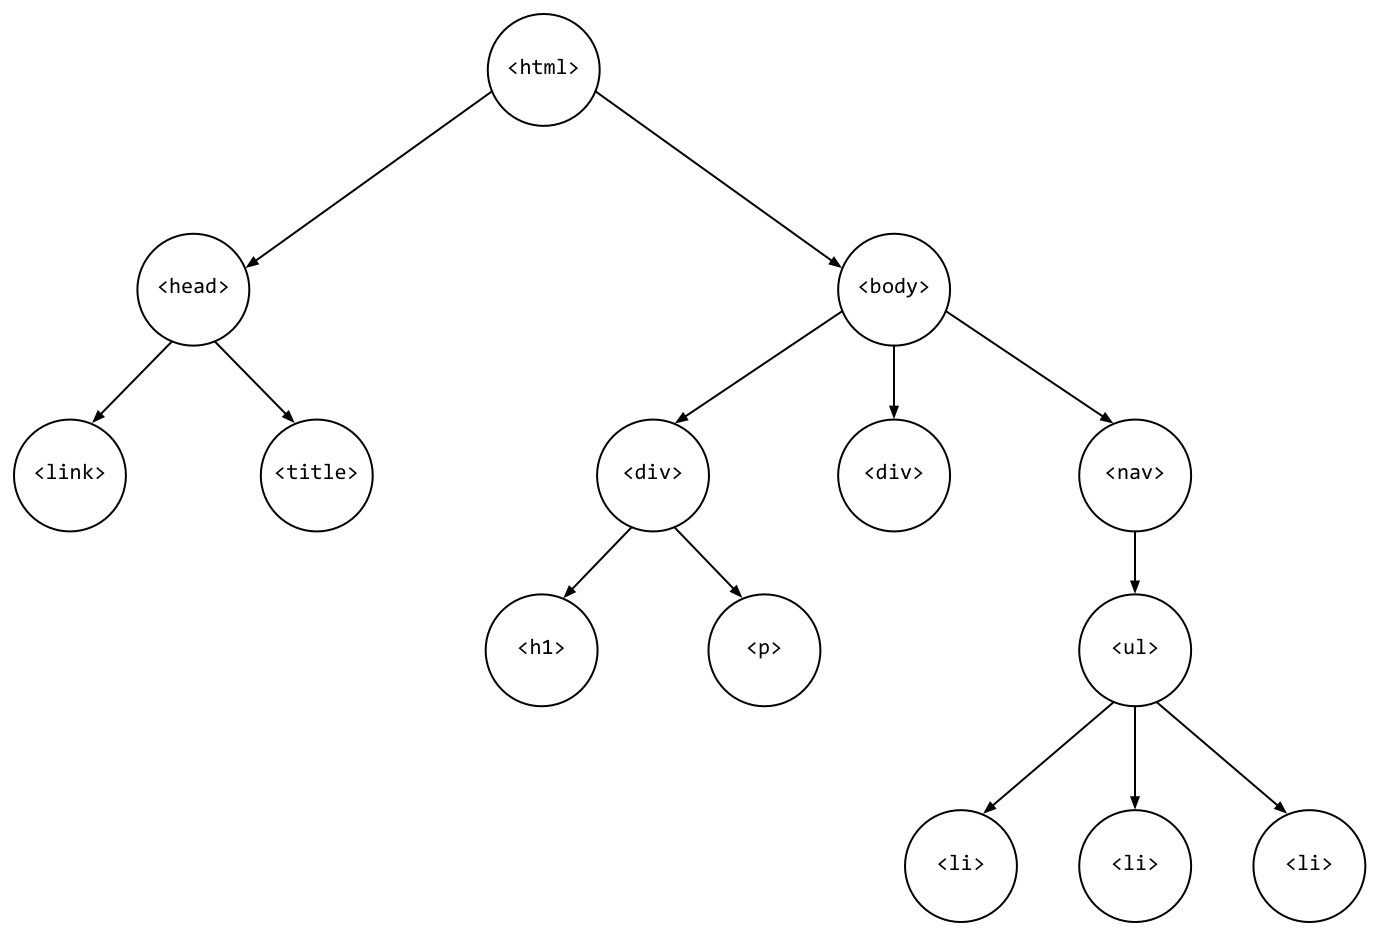 A tree structure diagram for an HTML page